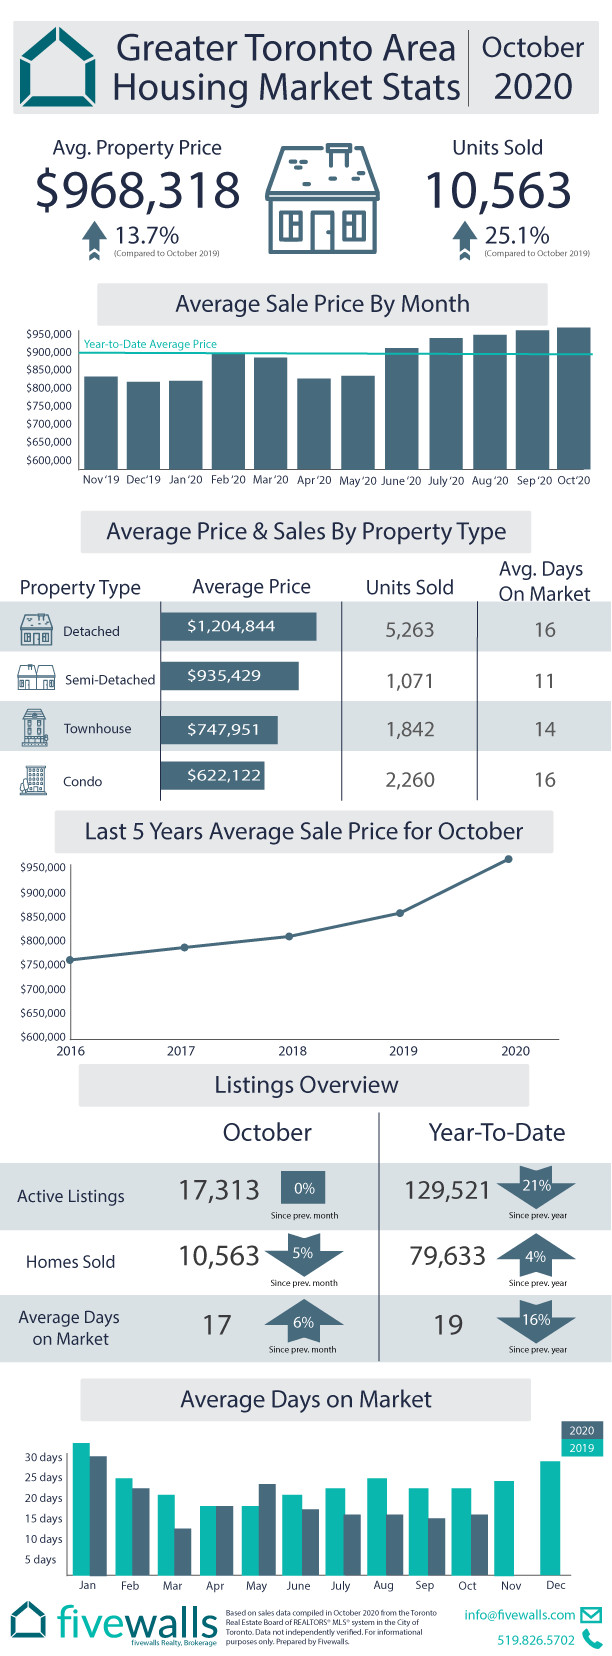 Toronto Real Estate Housing Market Update 2020